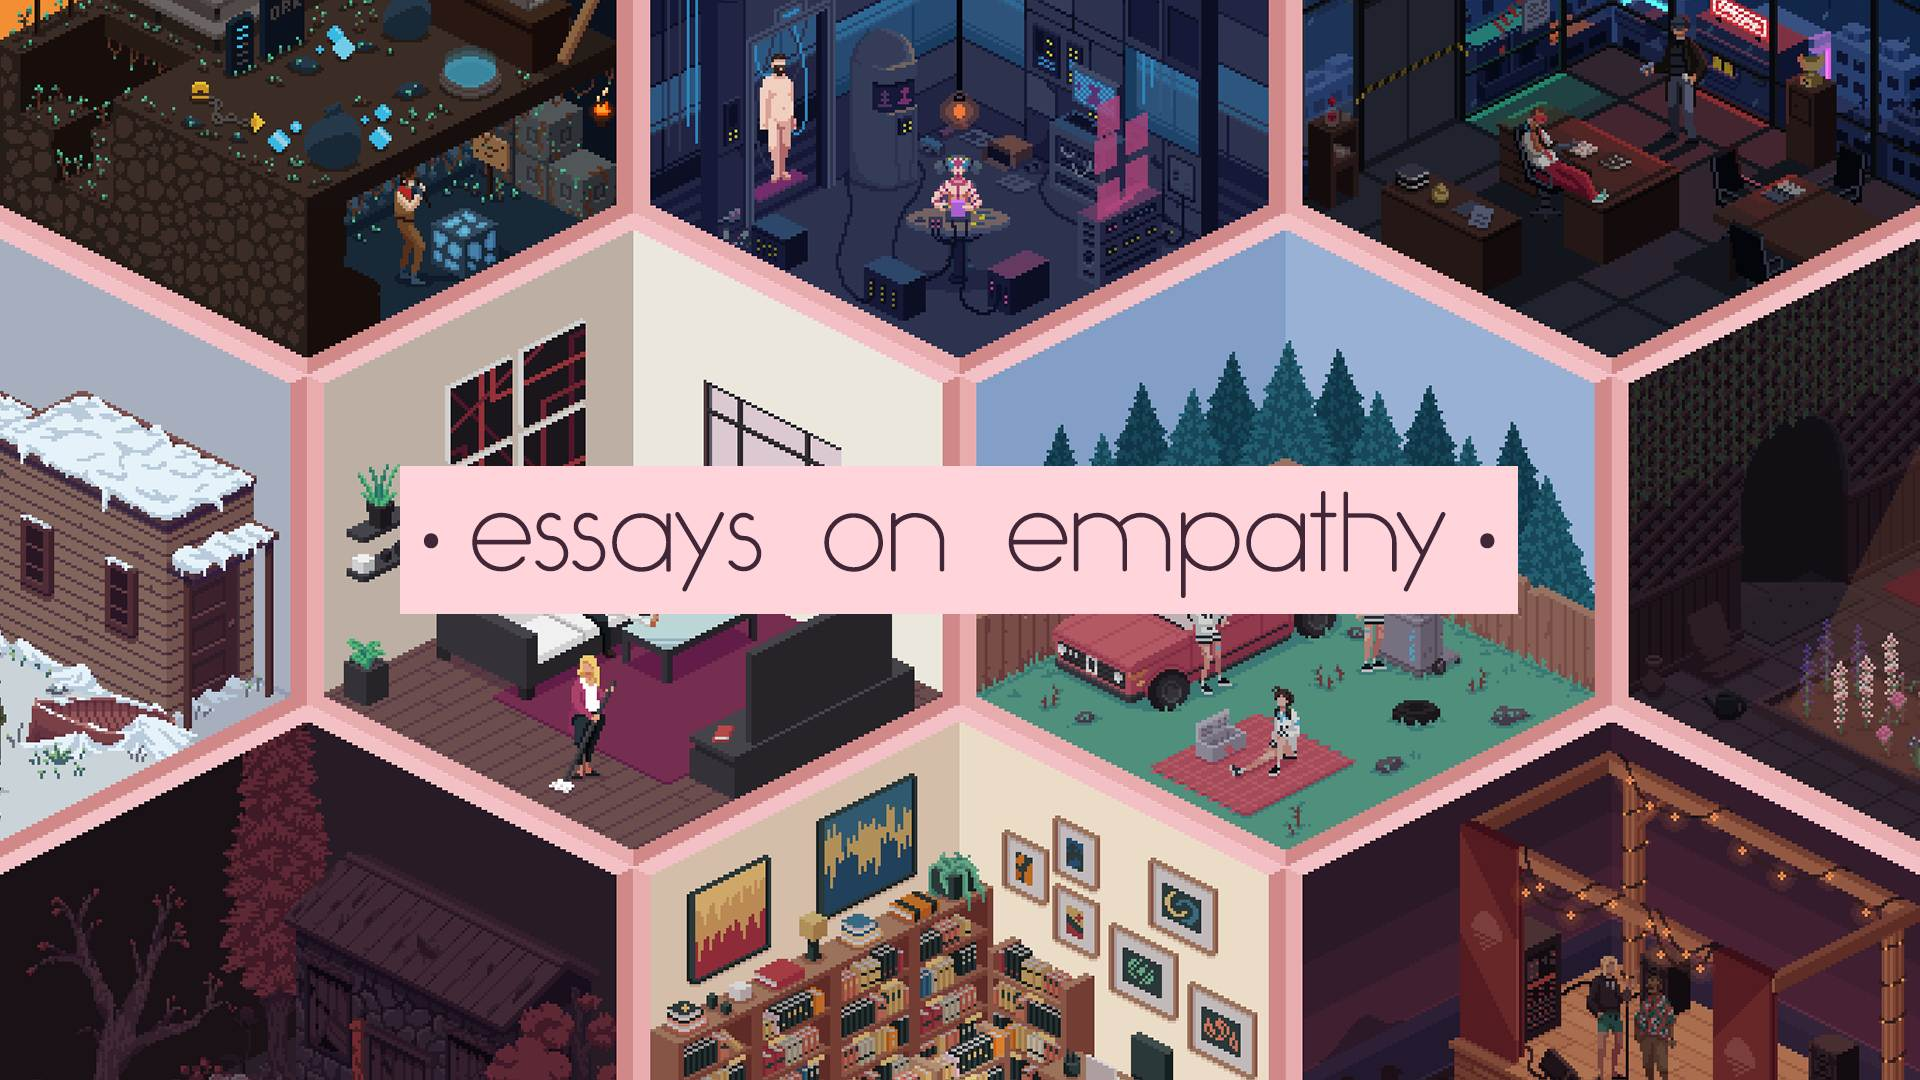 Essays on Empathy are on the way from Deconstructeam and Devolver screenshot